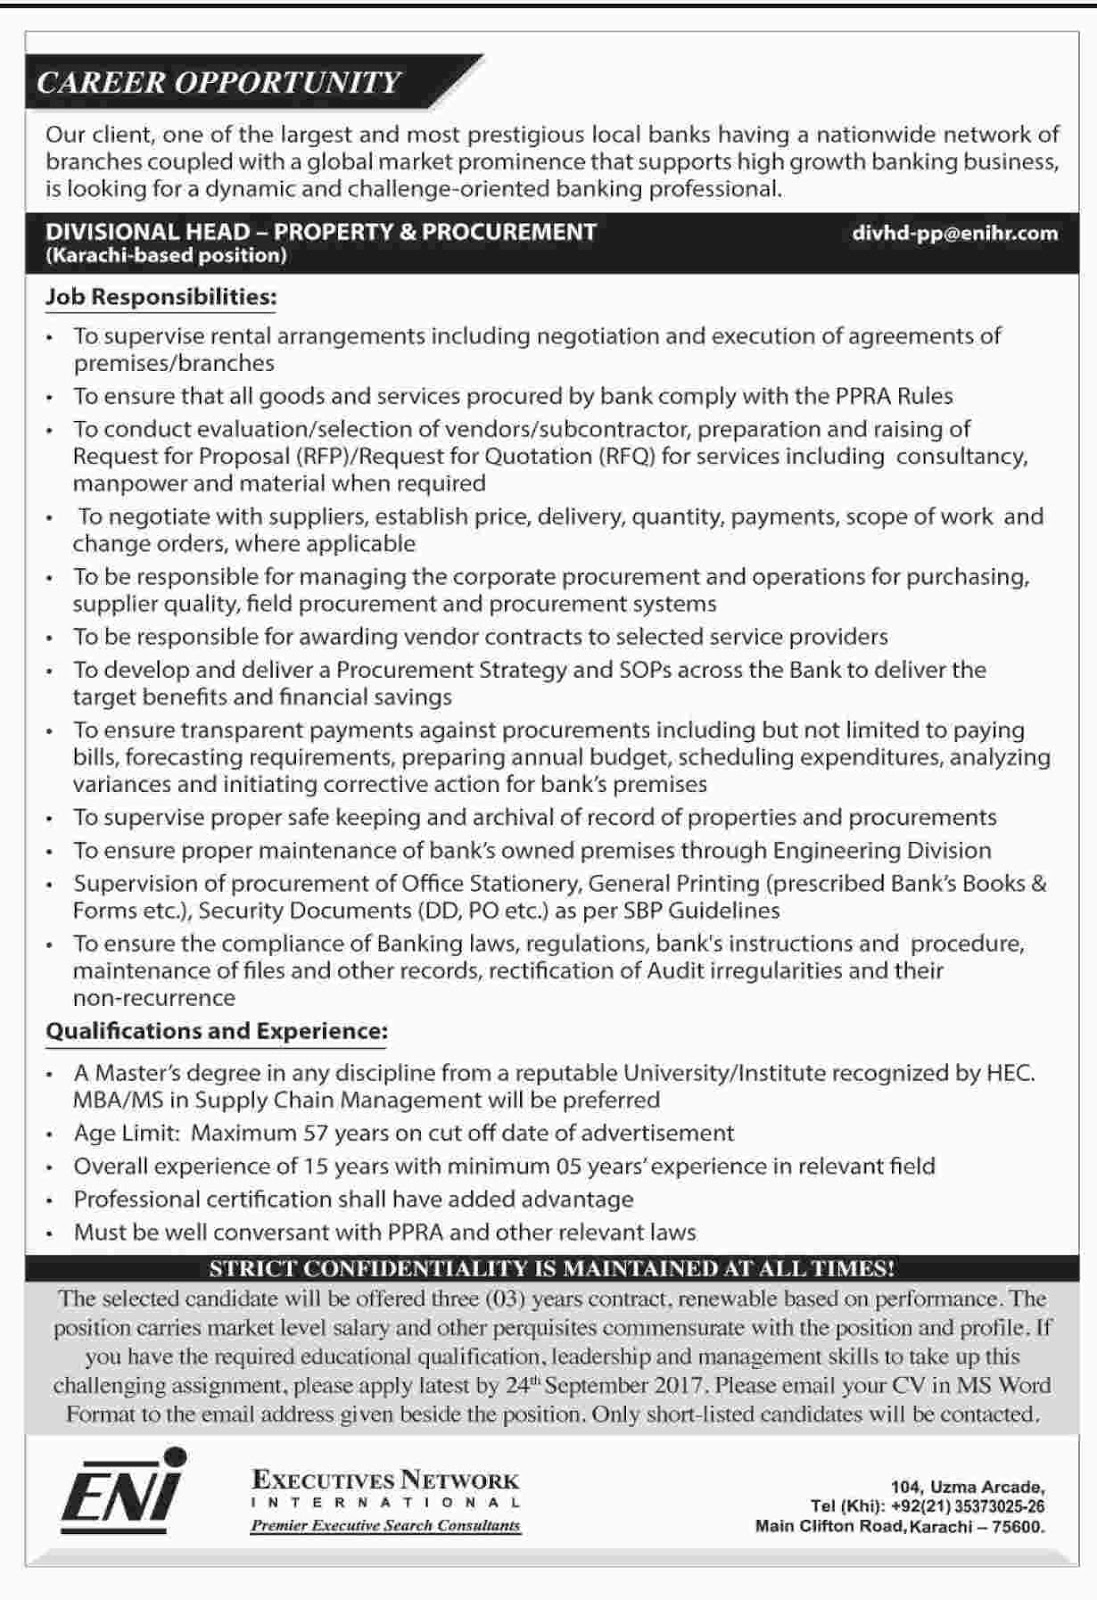 Jobs Executive Network International Karachi Sep 2017